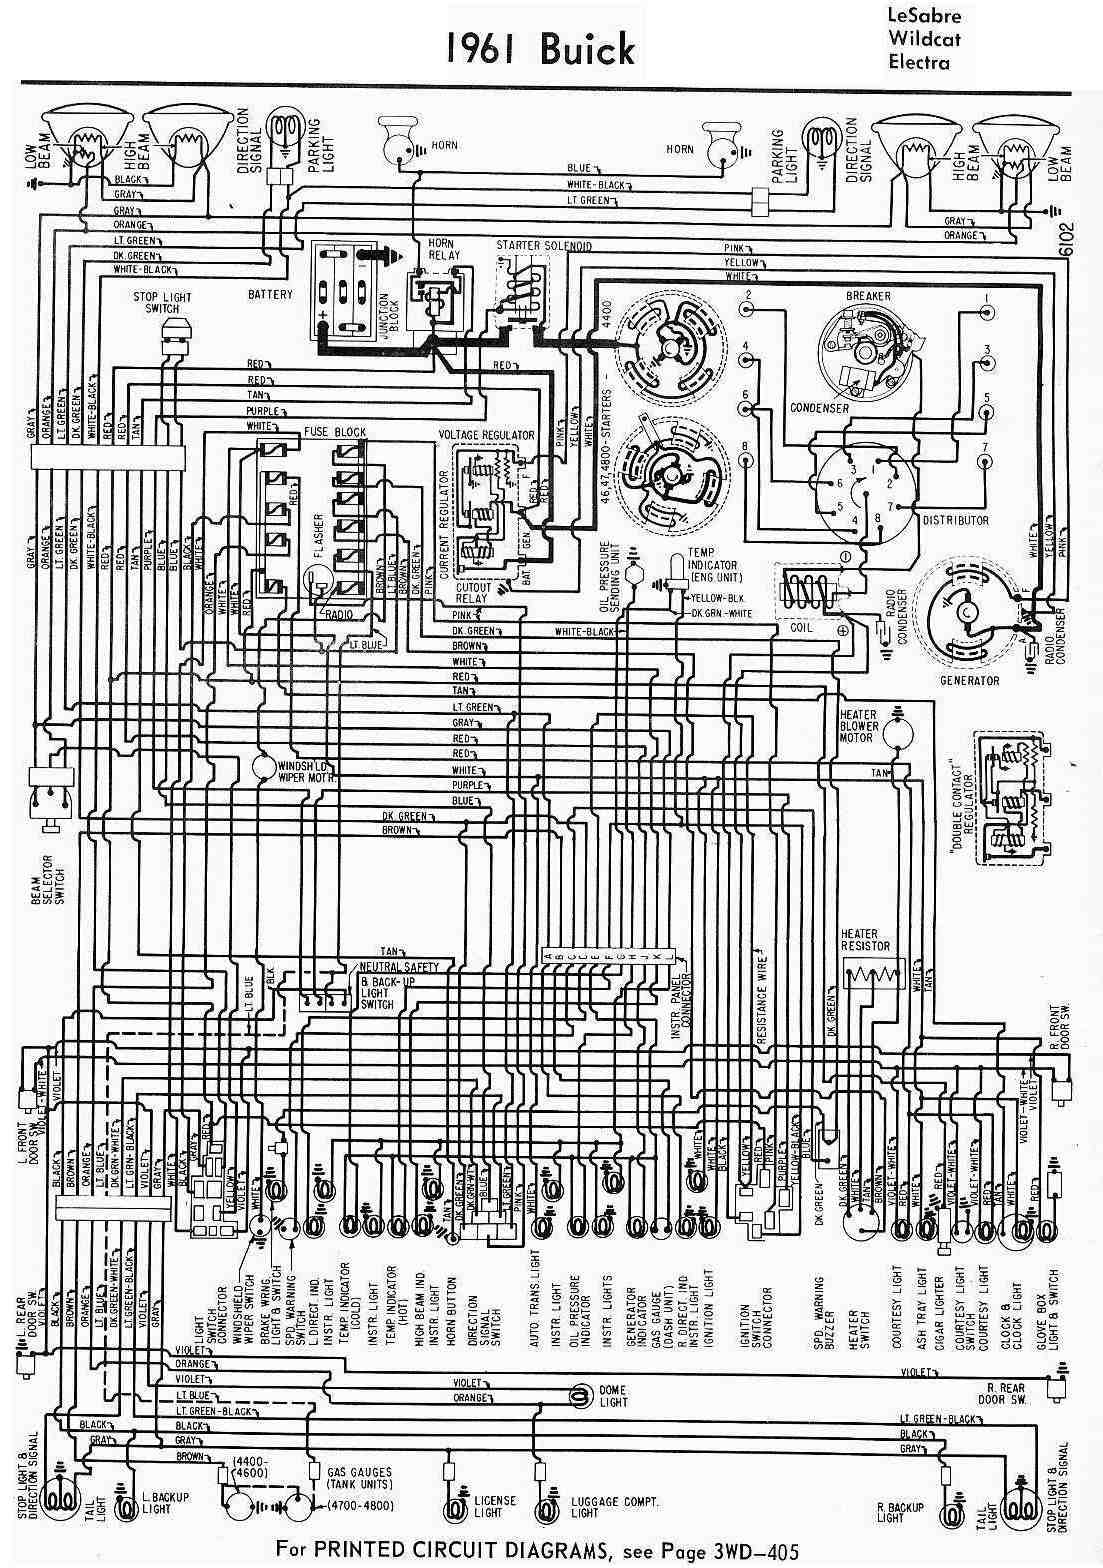 1996 S10 Radio Wiring Diagram 05 Kia Sedona December 2011 All About Diagrams